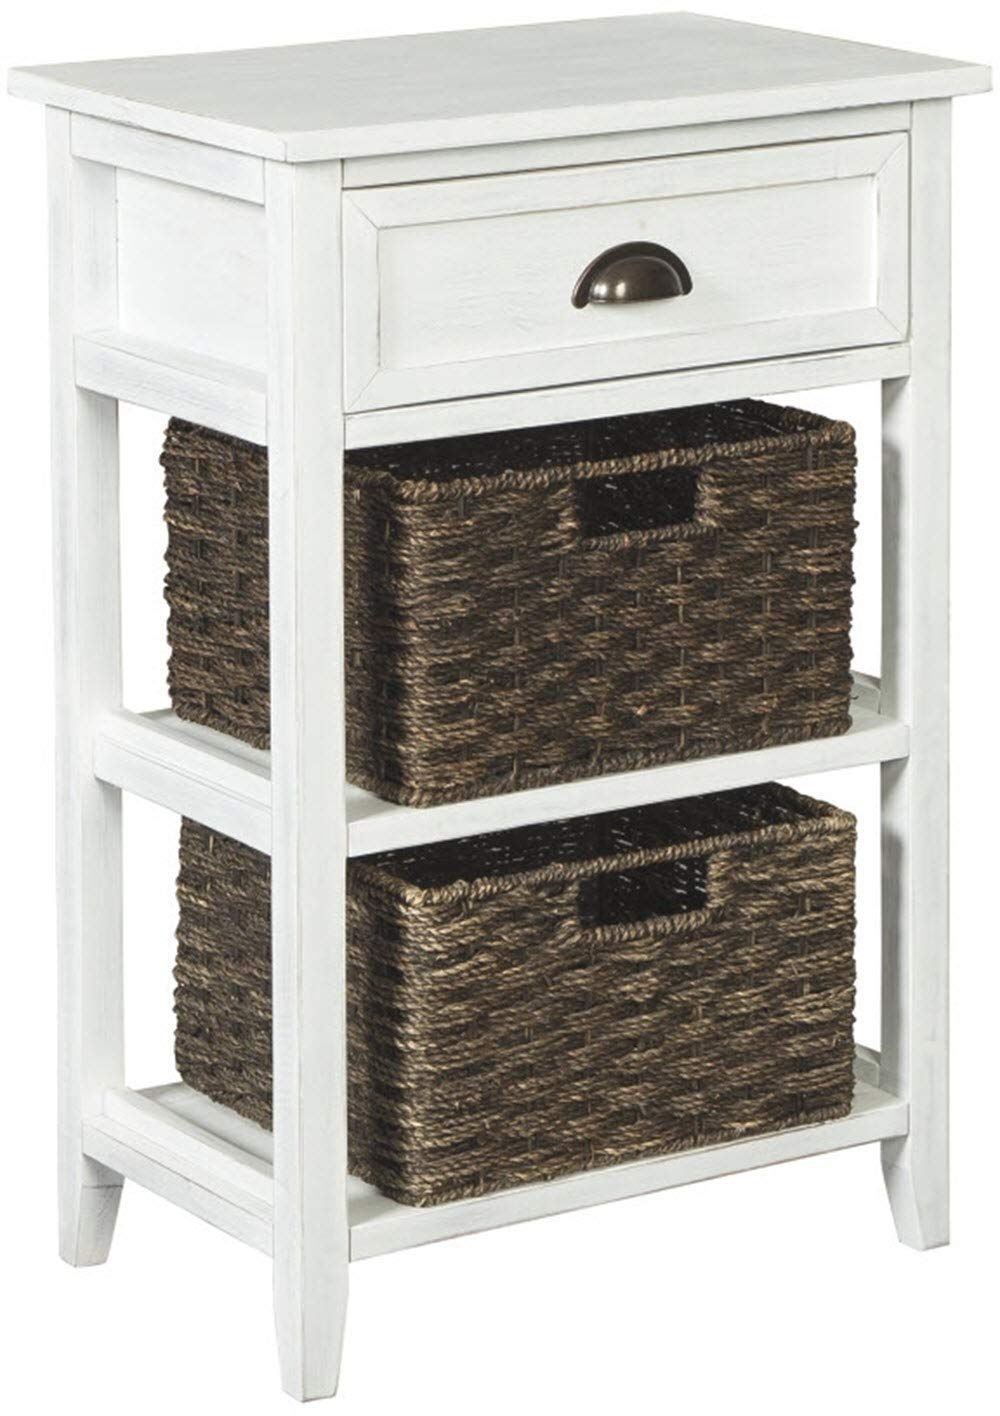 Ashley Furniture Signature Design Oslember Storage Accent Table Includes 2 Brown Removable Baskets Antique White Finish Hope You Actually Like Our